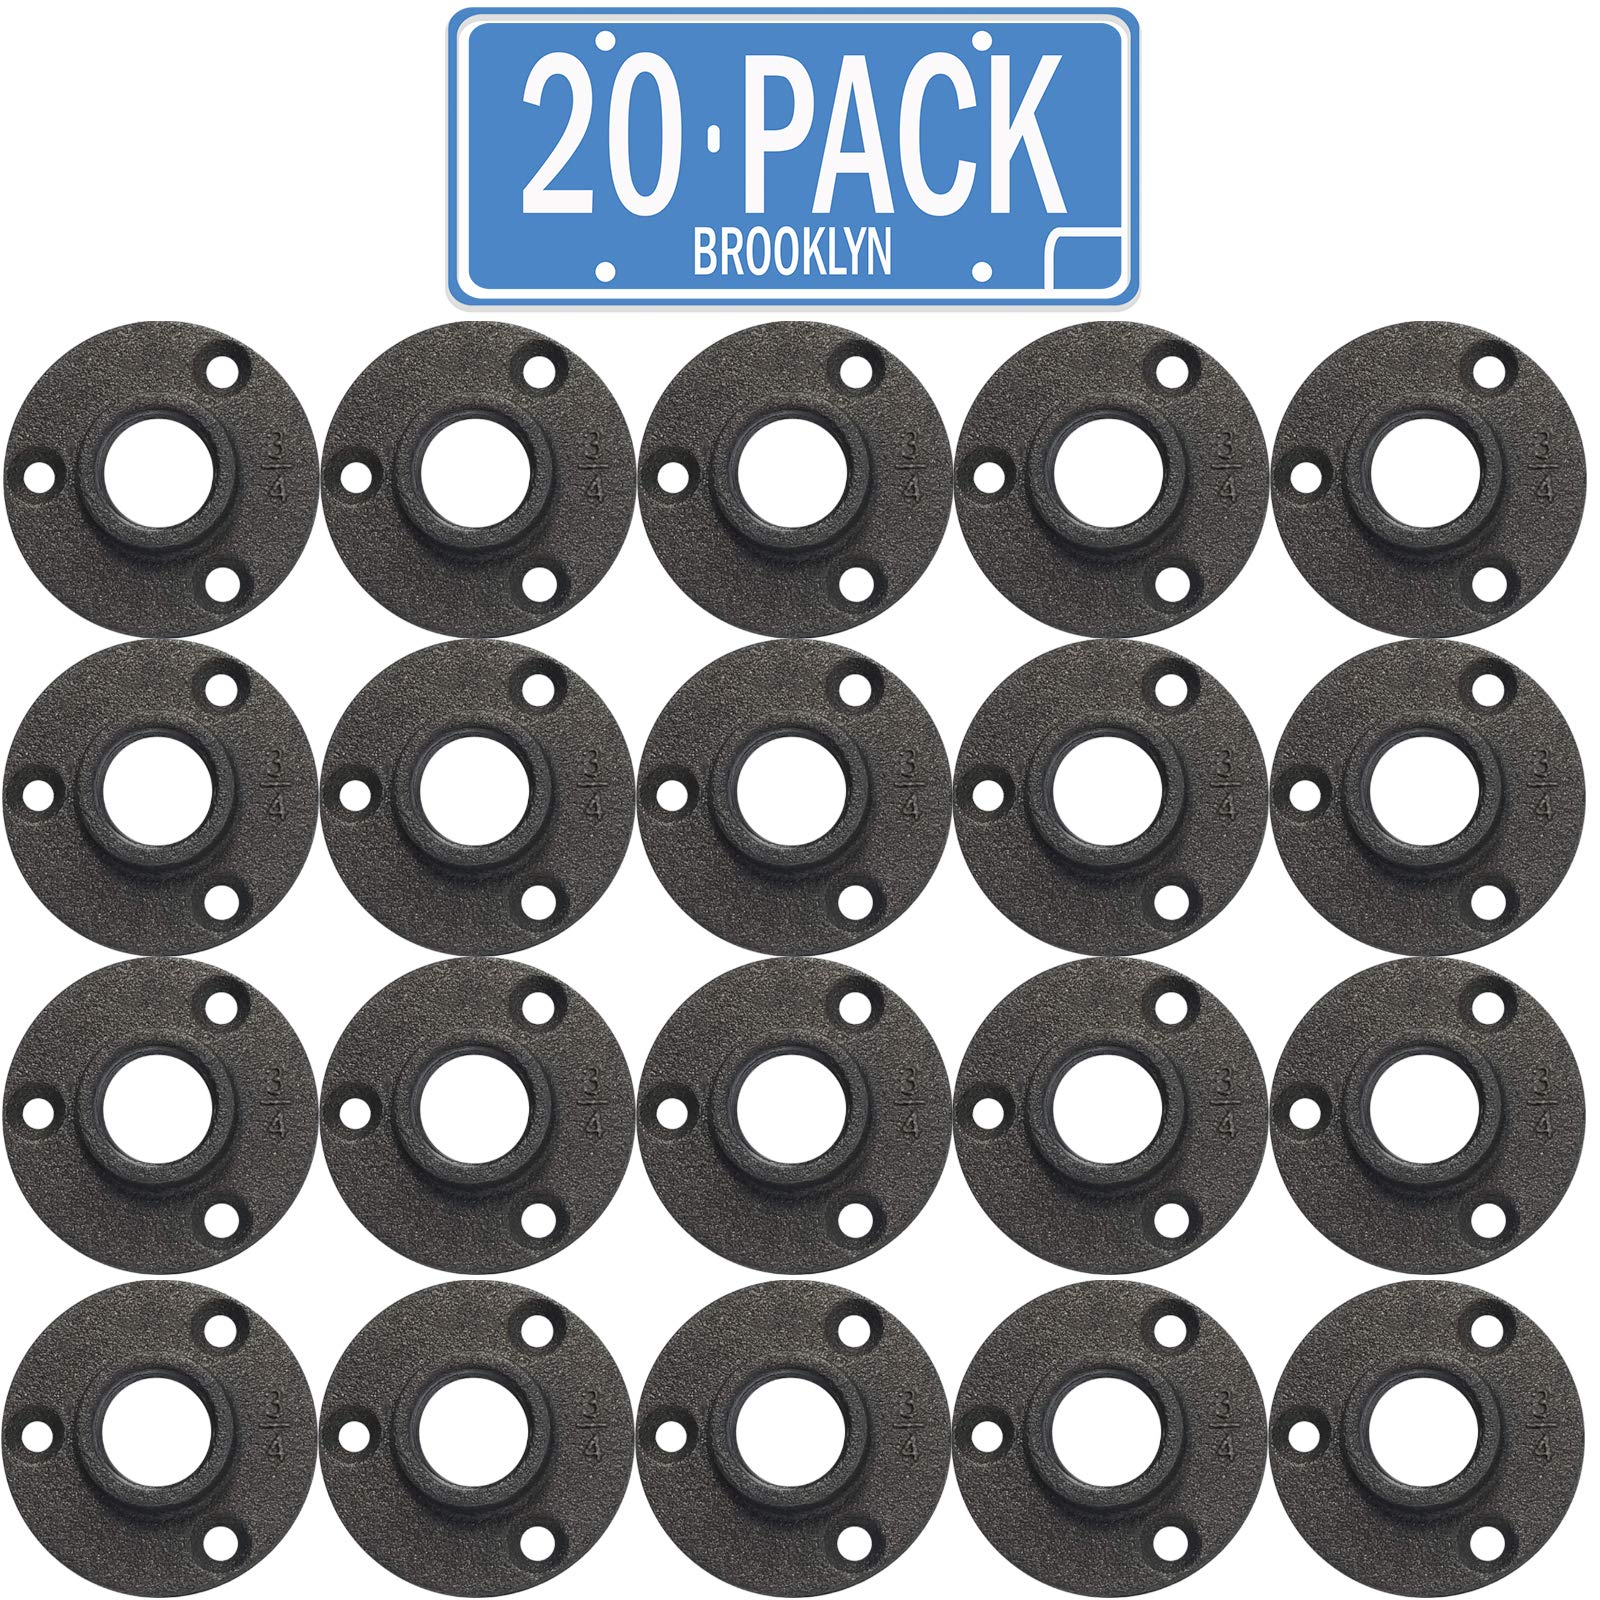 Brooklyn Pipe Flange - 20 Pack 3/4'' Black Floor Flange Cast Iron Pipe Fittings | Our 3/4 Inch Pipe Flange | Industrial Pipe Flanges | Decorative Pipe Fitting Fit for Steampunk Furniture by Brooklyn Pipe